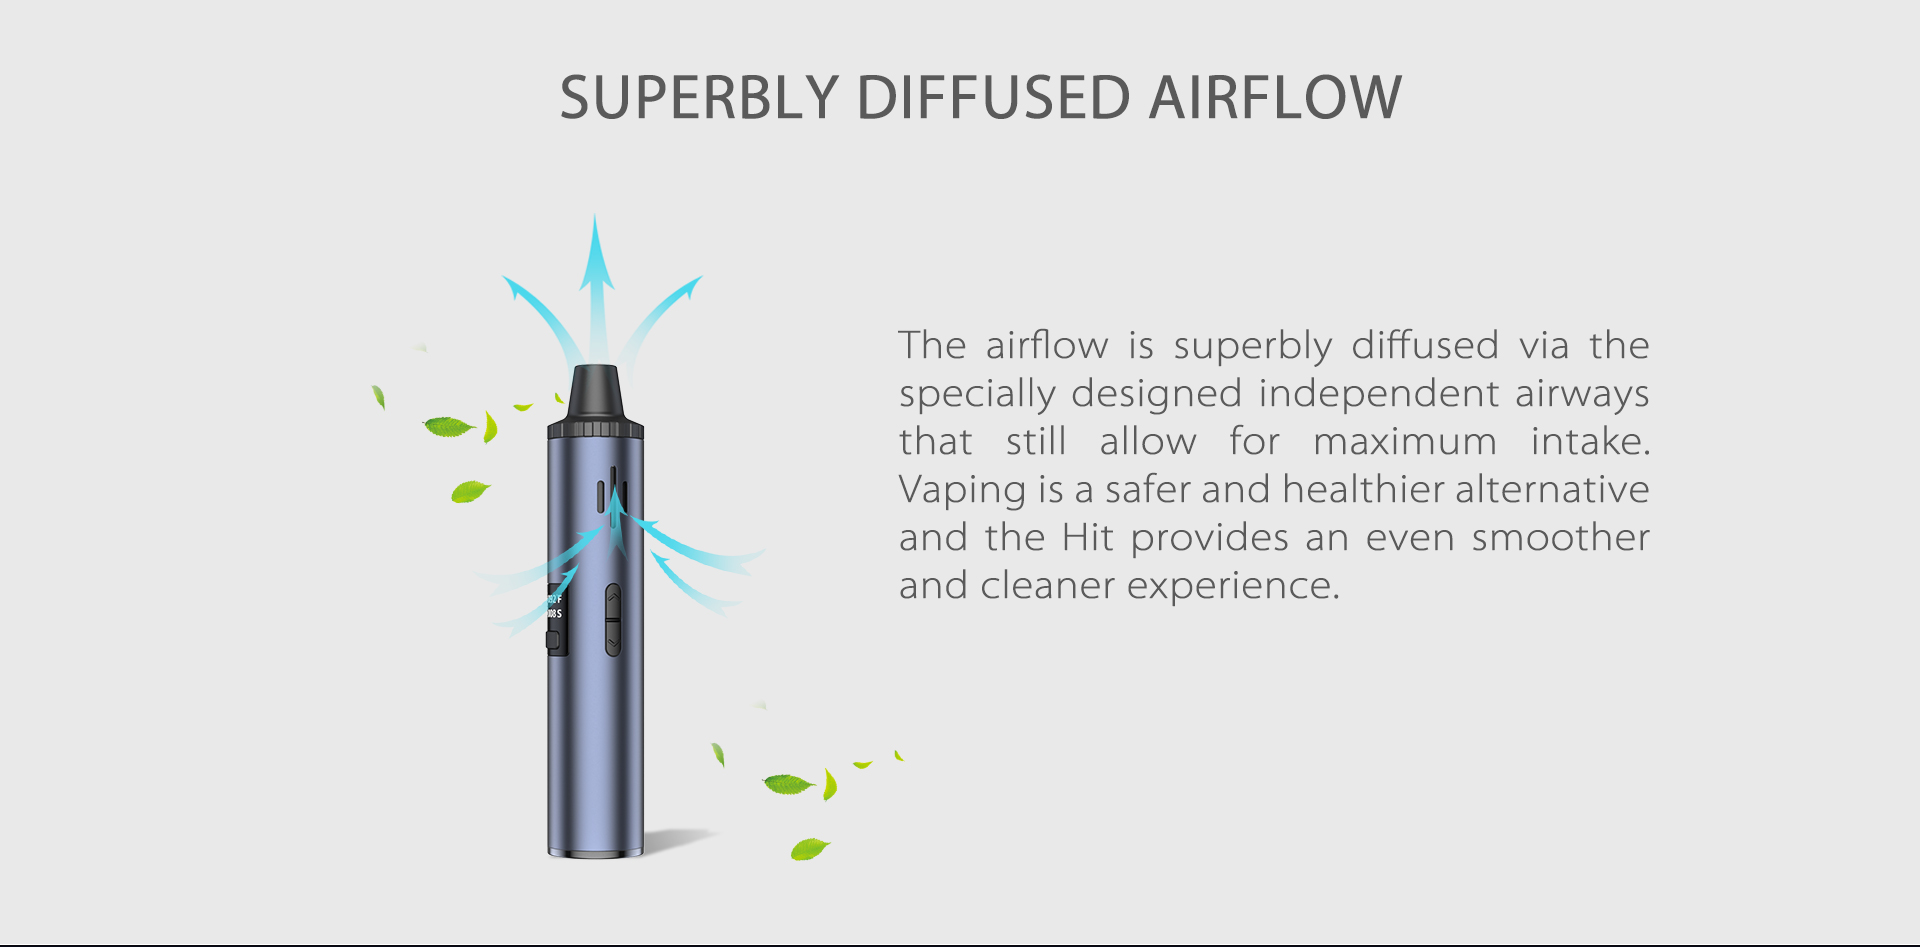 Yocan Hit Vaporizer Pen come with Superbly Diffused Airflow